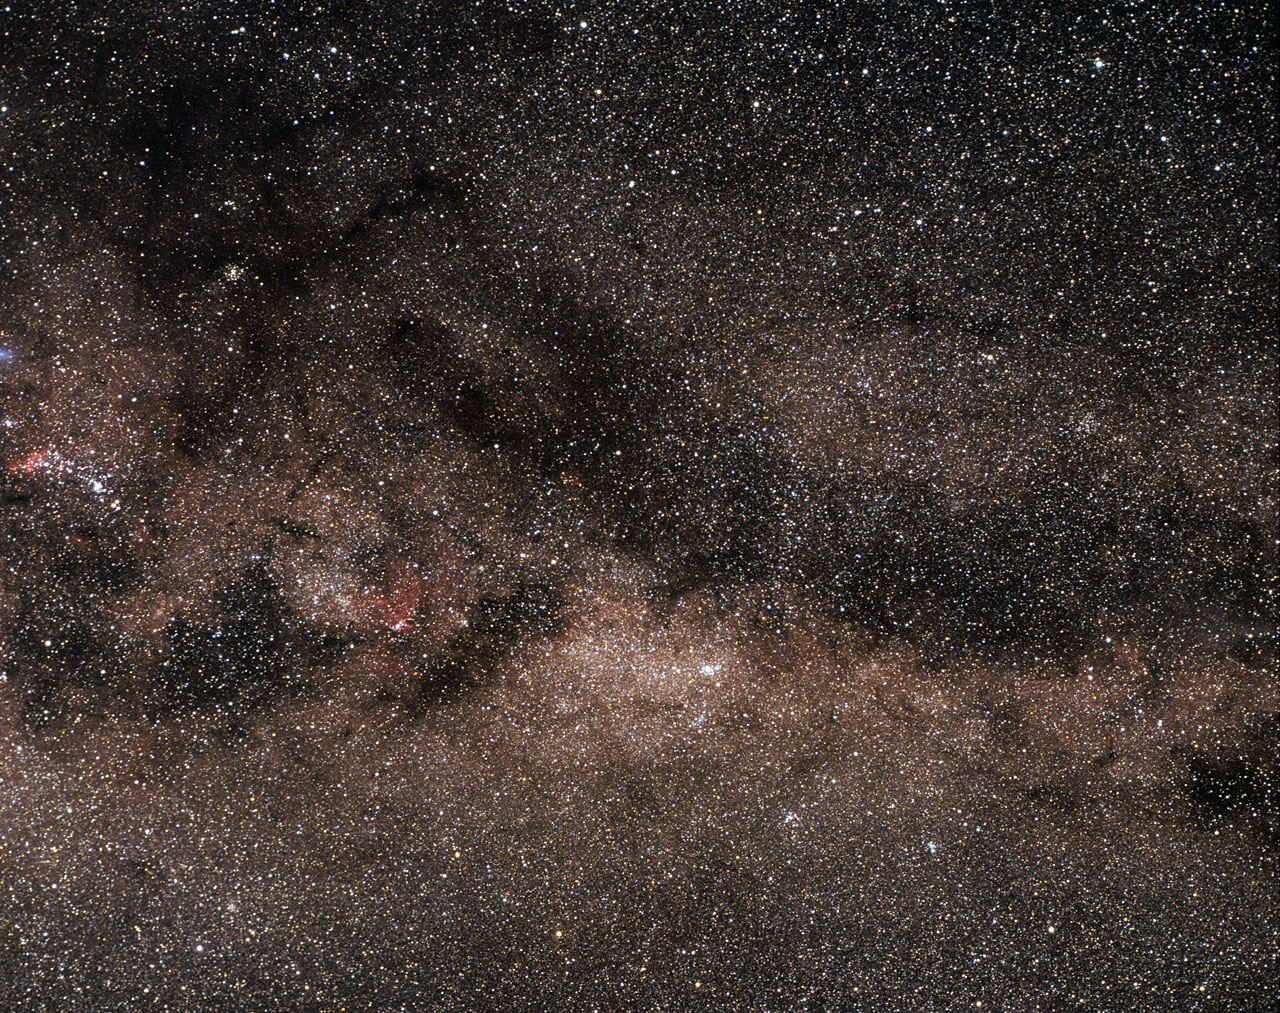 Norma and the Milky Way